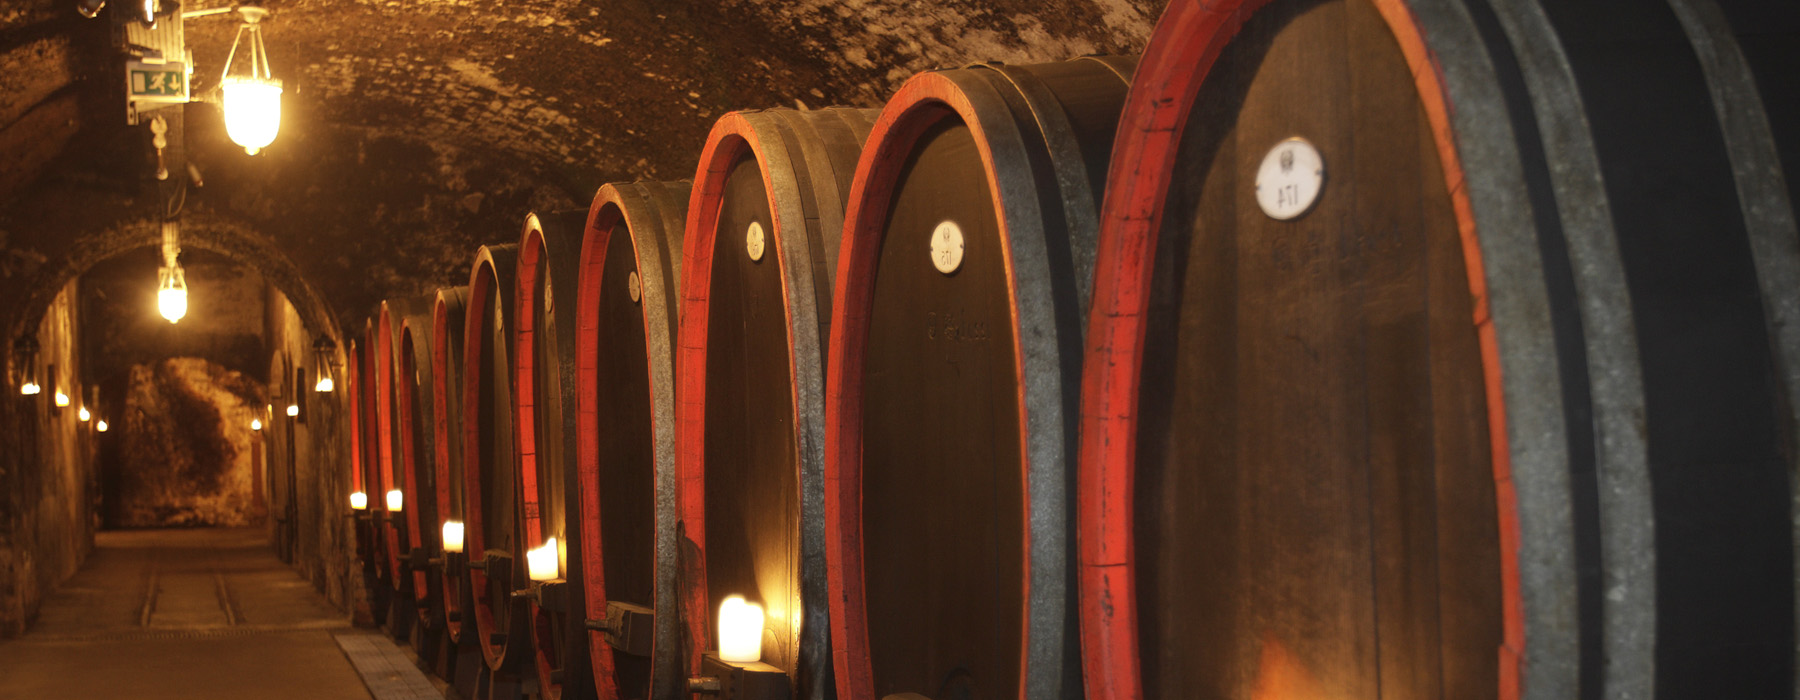 Guided tour to a winery